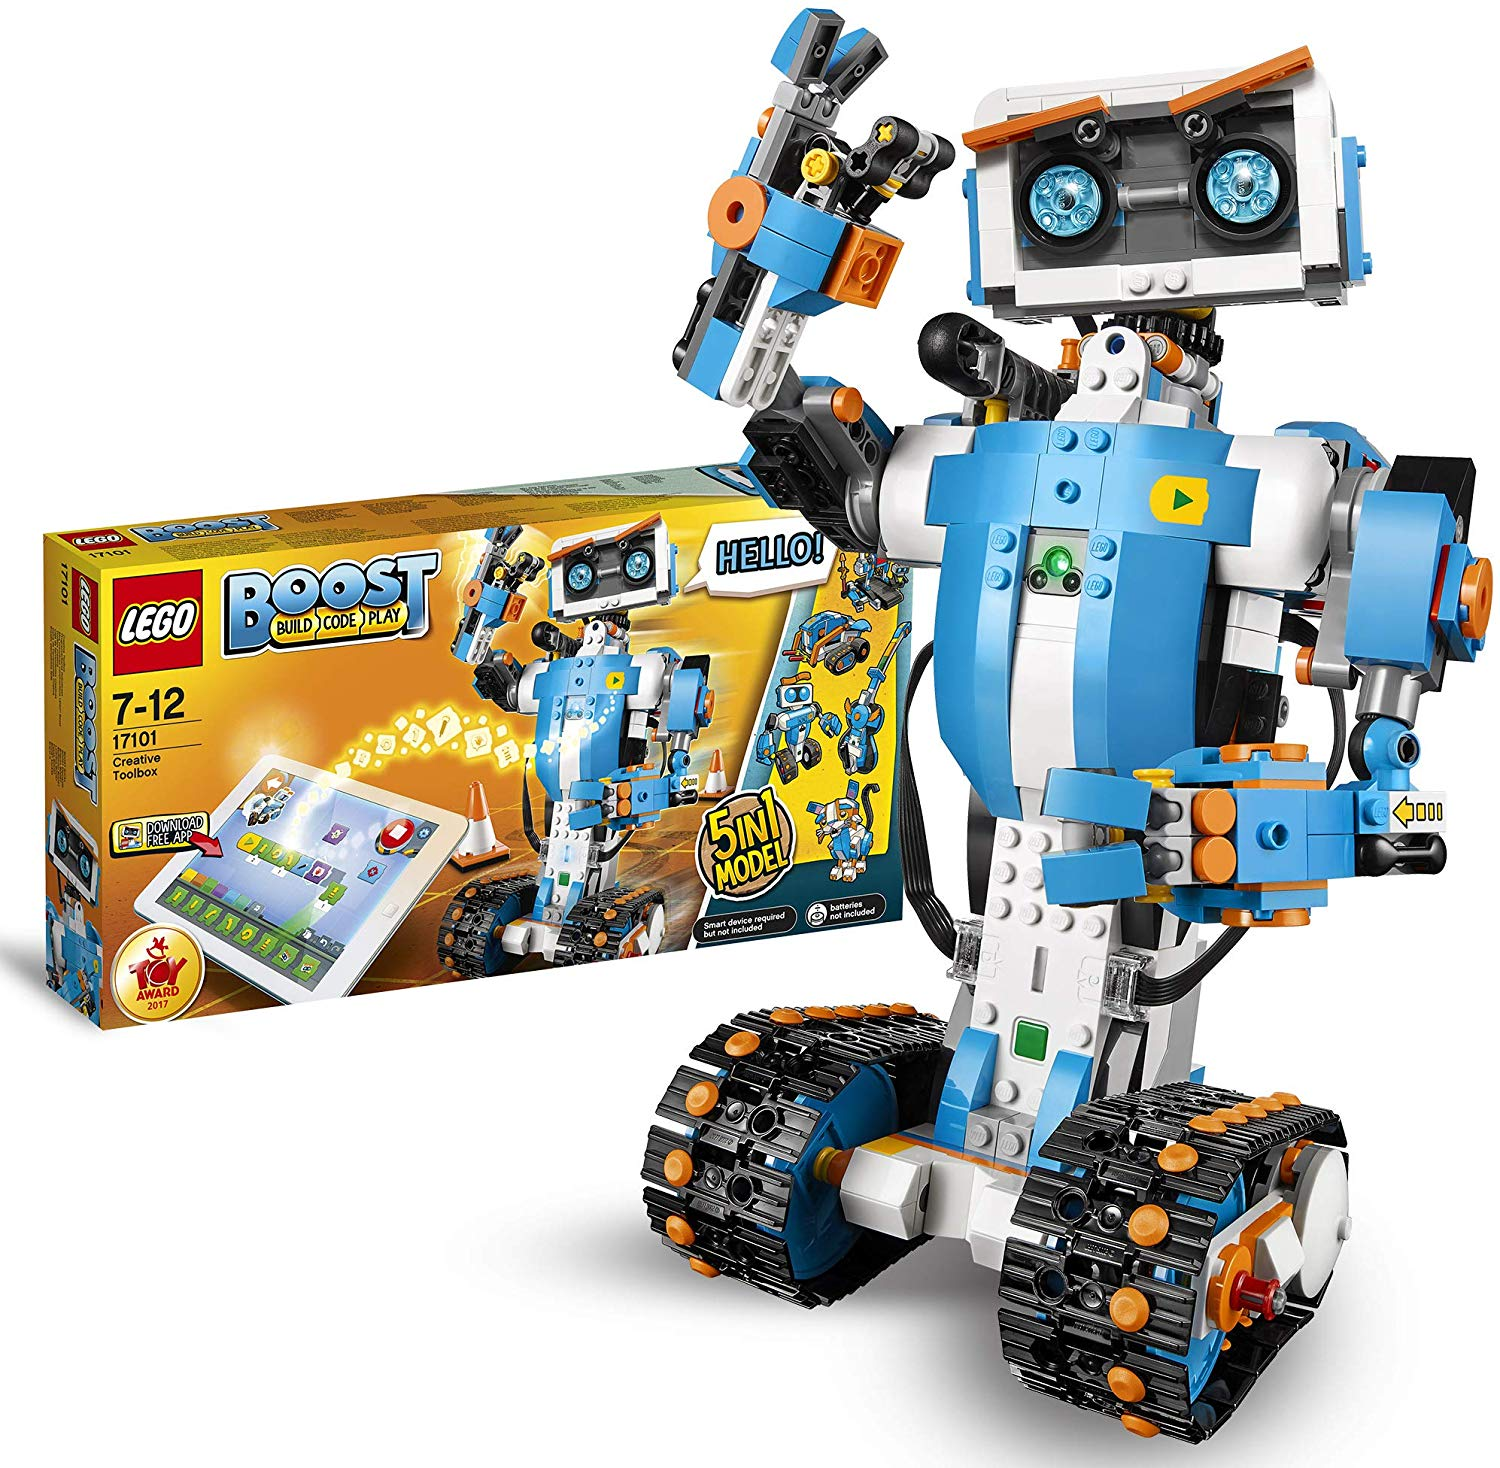 37% off LEGO 17101 Boost Creative Toolbox Robotics Kit, Coding Kits for Kids